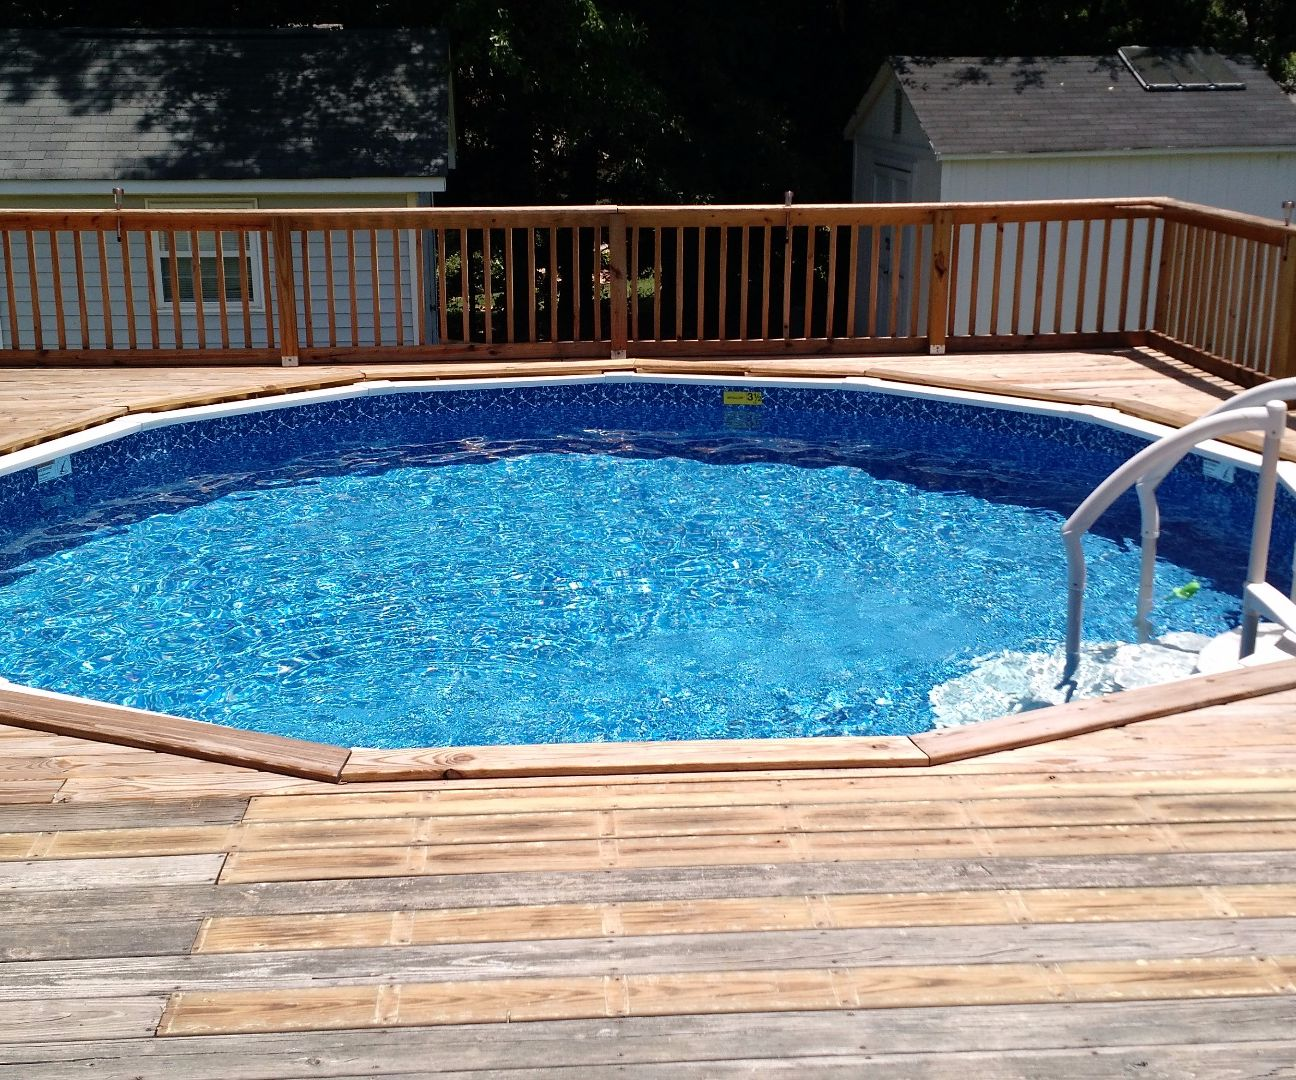 DIY Solar Pool Heater : 7 Steps (with Pictures) - Instructables